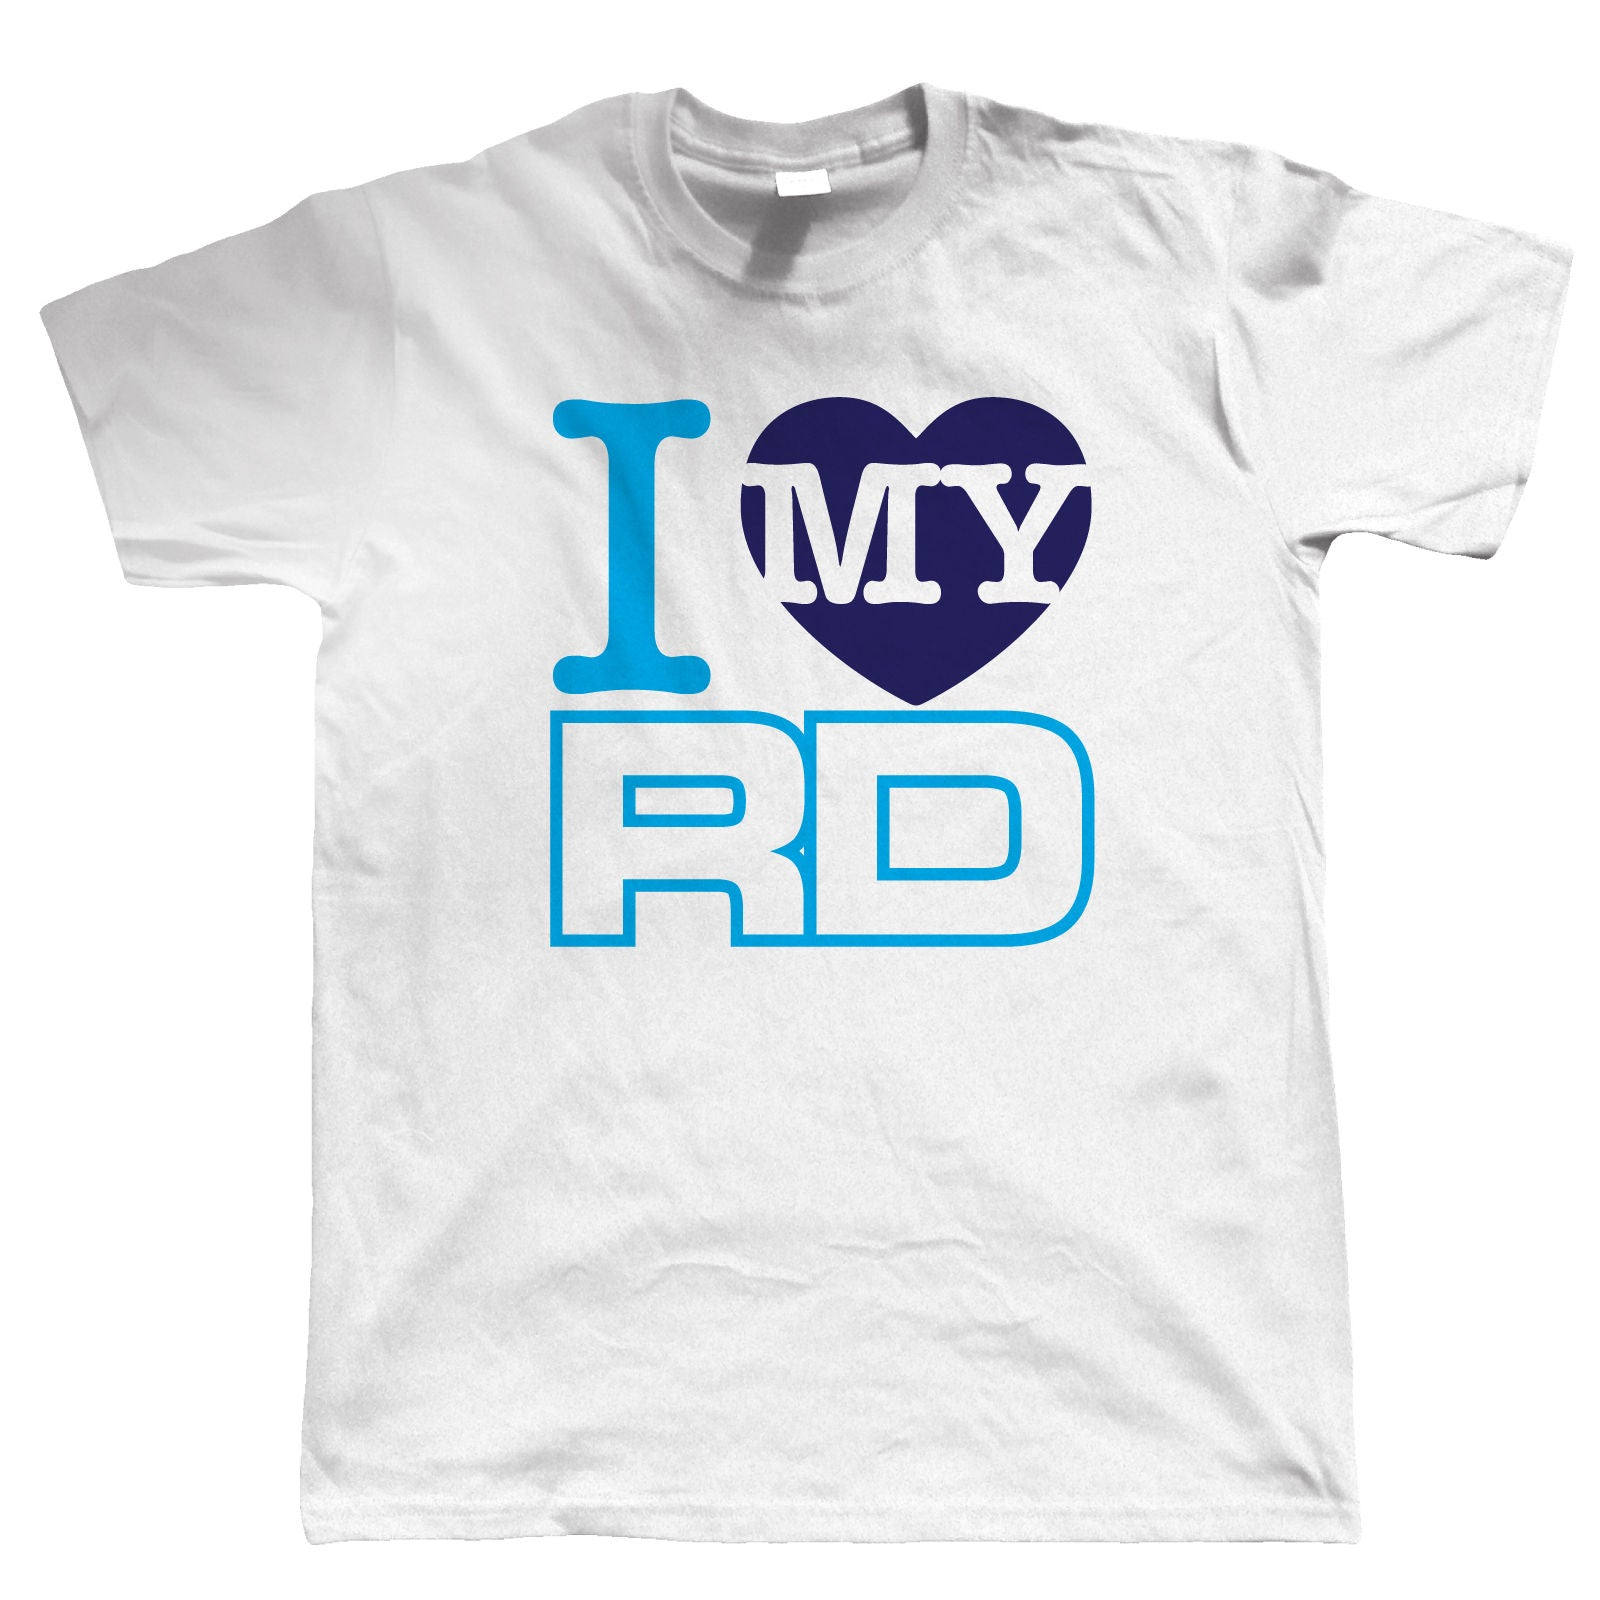 I Love My RD, Mens Funny Biker T Shirt | Motorbike Racing Enthusiast Two Stroke Classic Motorcycle Club Cafe Racer Superbike Gentleman Biker | Cool Birthday Christmas Gift Present Him Dad Husband Son